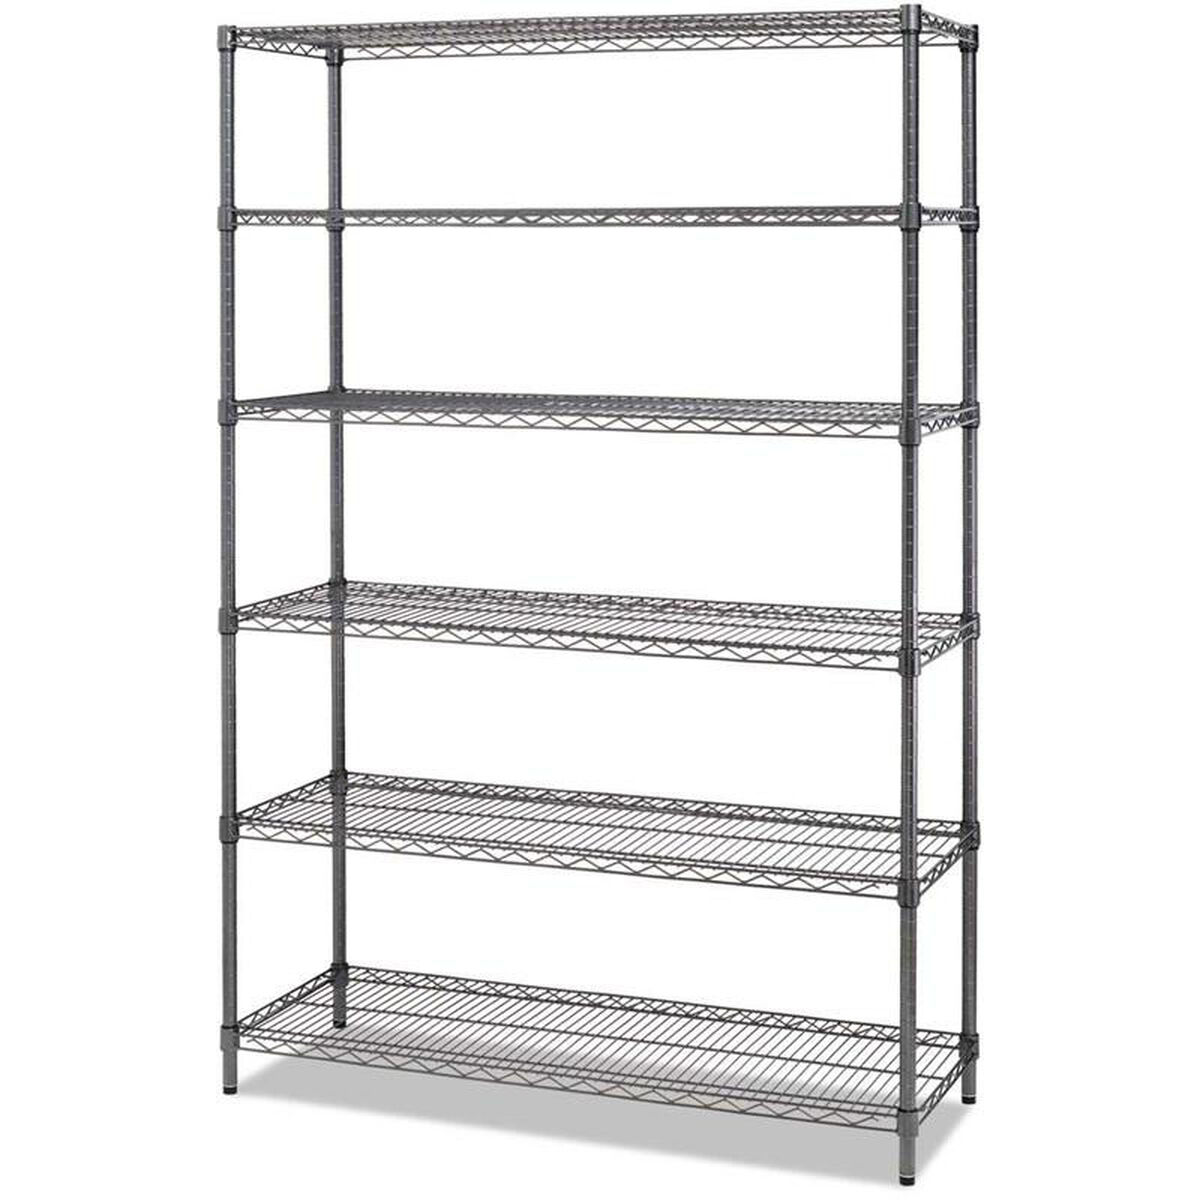 6 Shelf Wire Shelving Unit Black Alesw664818bl Commercial Wiring For Dummies Our Alerareg With Six Shelves 48w X